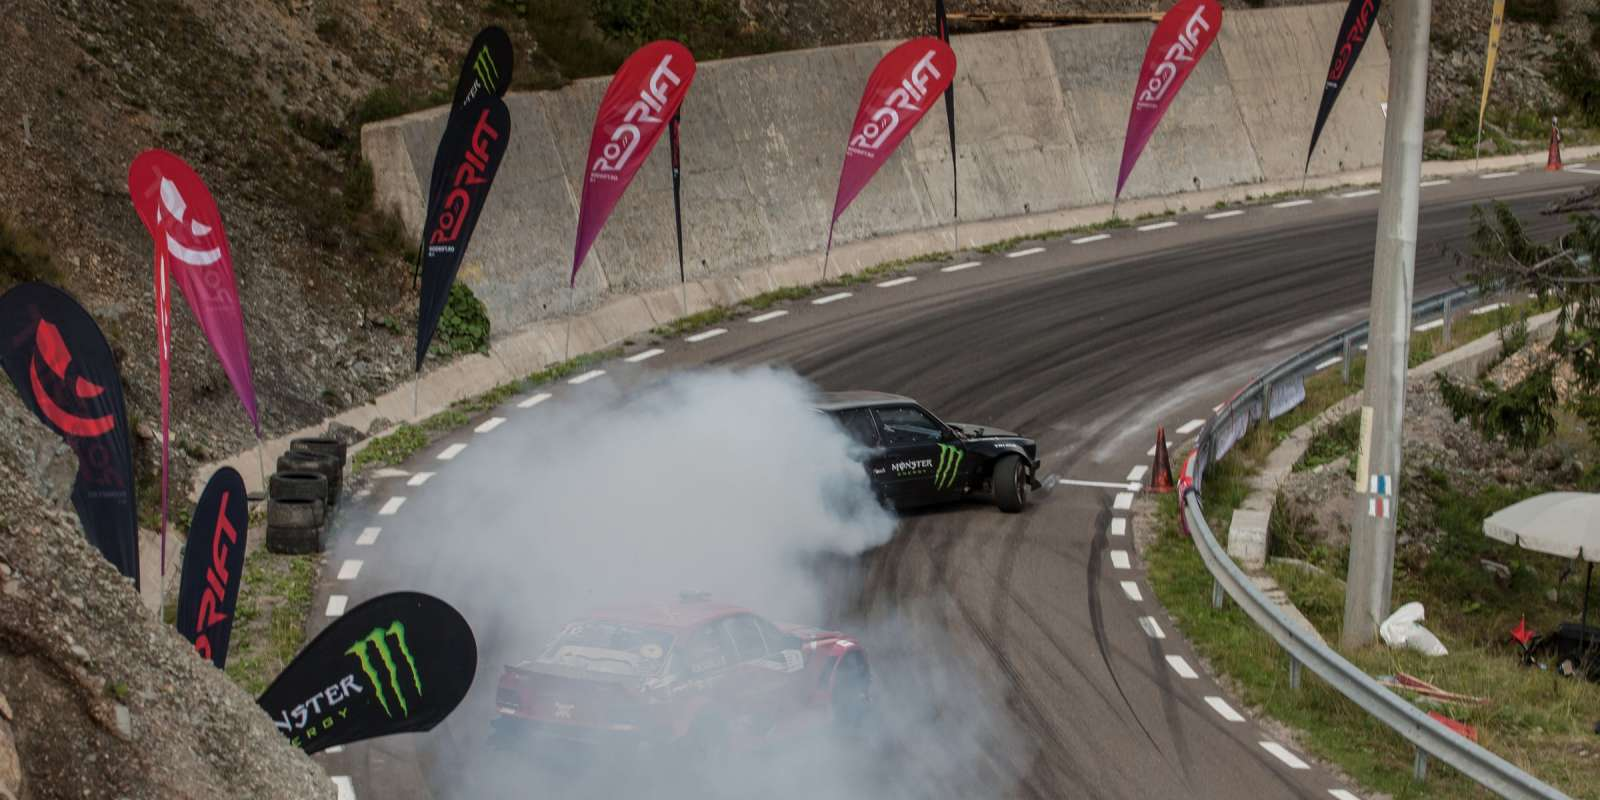 Event imagery taken at the 4th stage of the Romanian Drift Championship. We have valid contracts with both the event and one of the riders in the images (black branded car). The contracts are uploaded in this file also. The name of the other athletes have